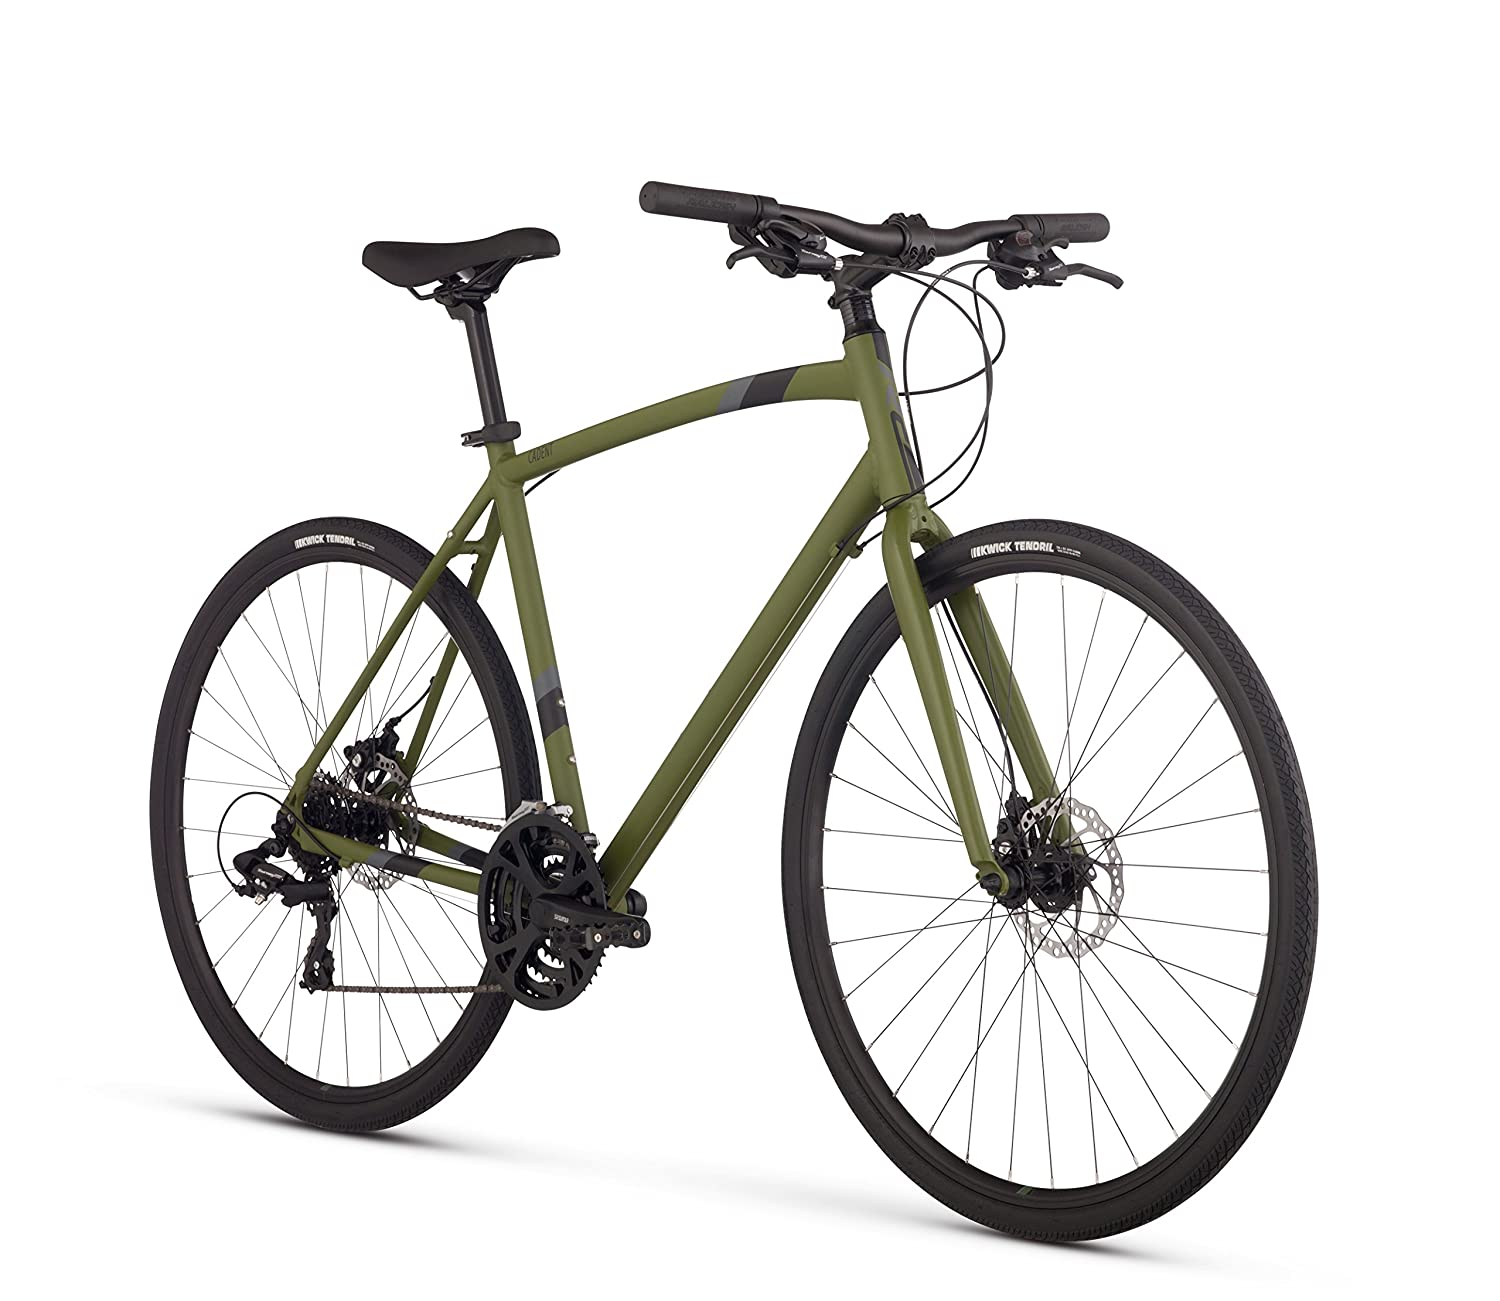 Raleigh Cadent 2 Urban Fitness Bike Best Budget Touring Bike